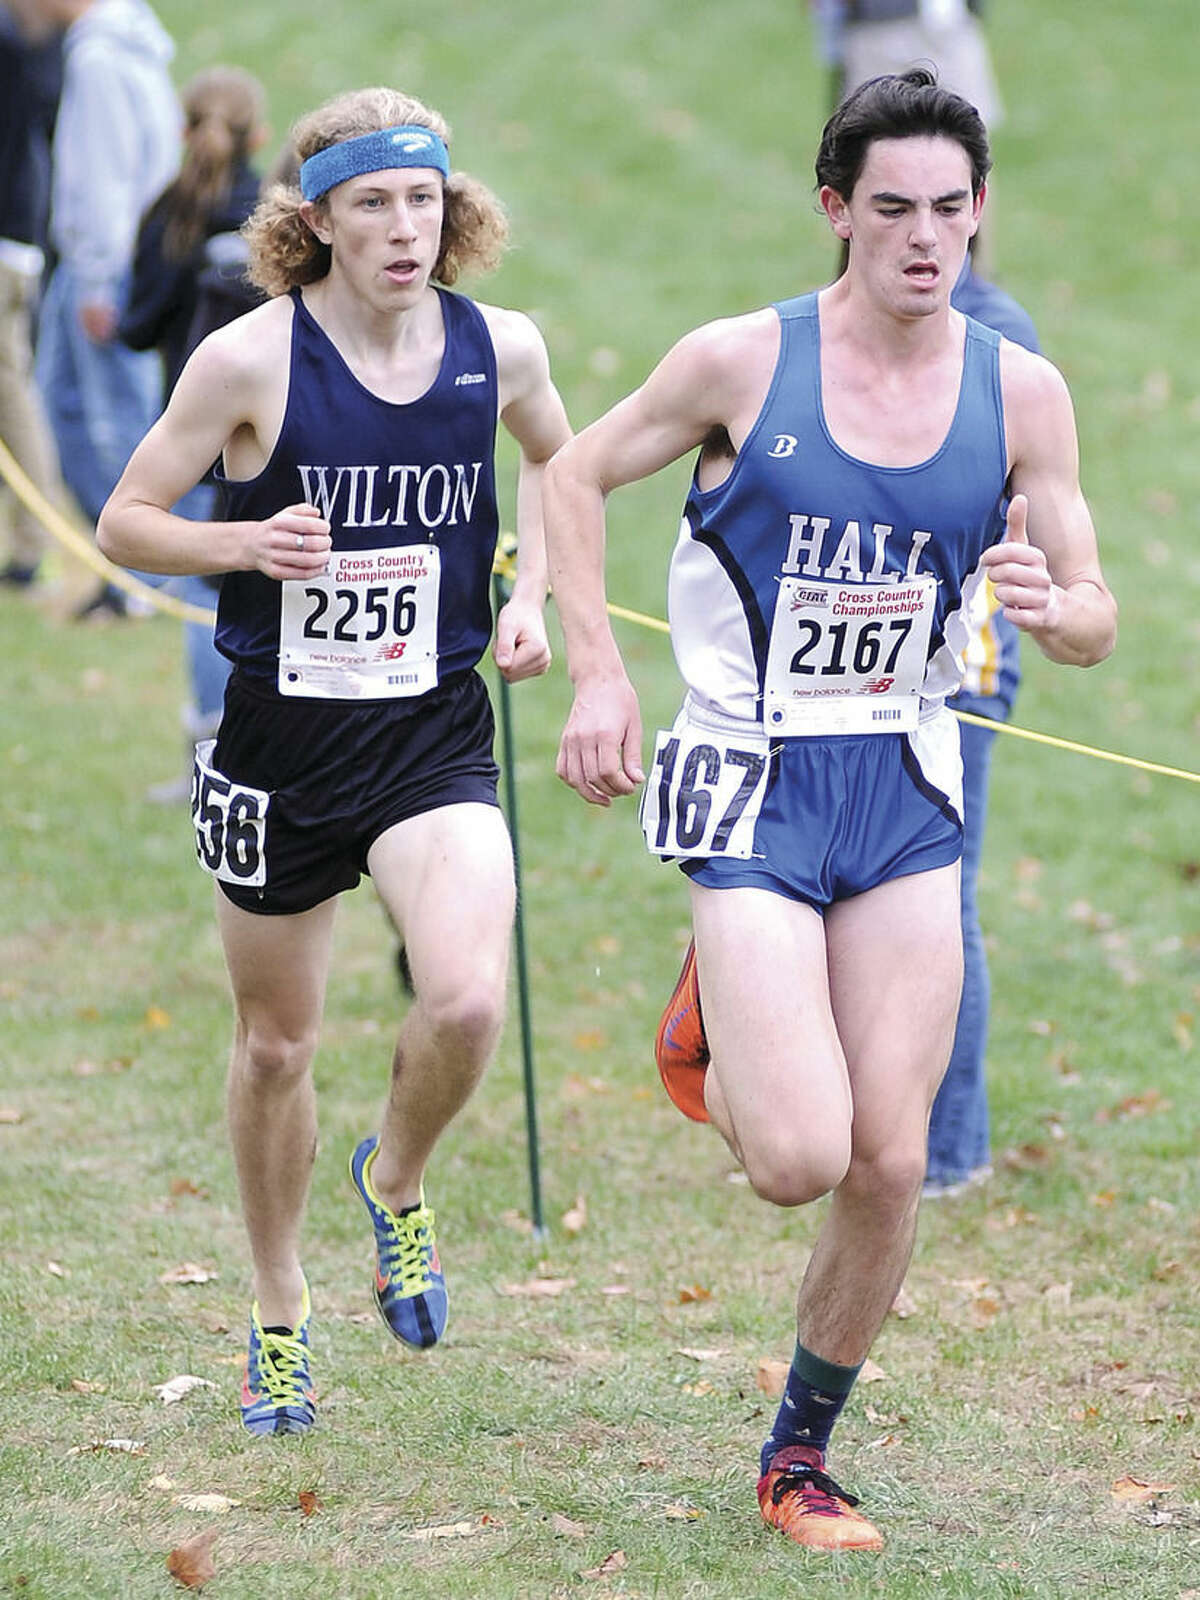 Hour photo/John Nash Wilton's Spencer Brown, left, tries his best to stay with Hall's Ari Klau as the two kick to the finish in Friday's State Open Cross Country meet at Wickham Park in Manchester. Klau finished second and Brown was third behind race winner Alex Ostberg of Darien.